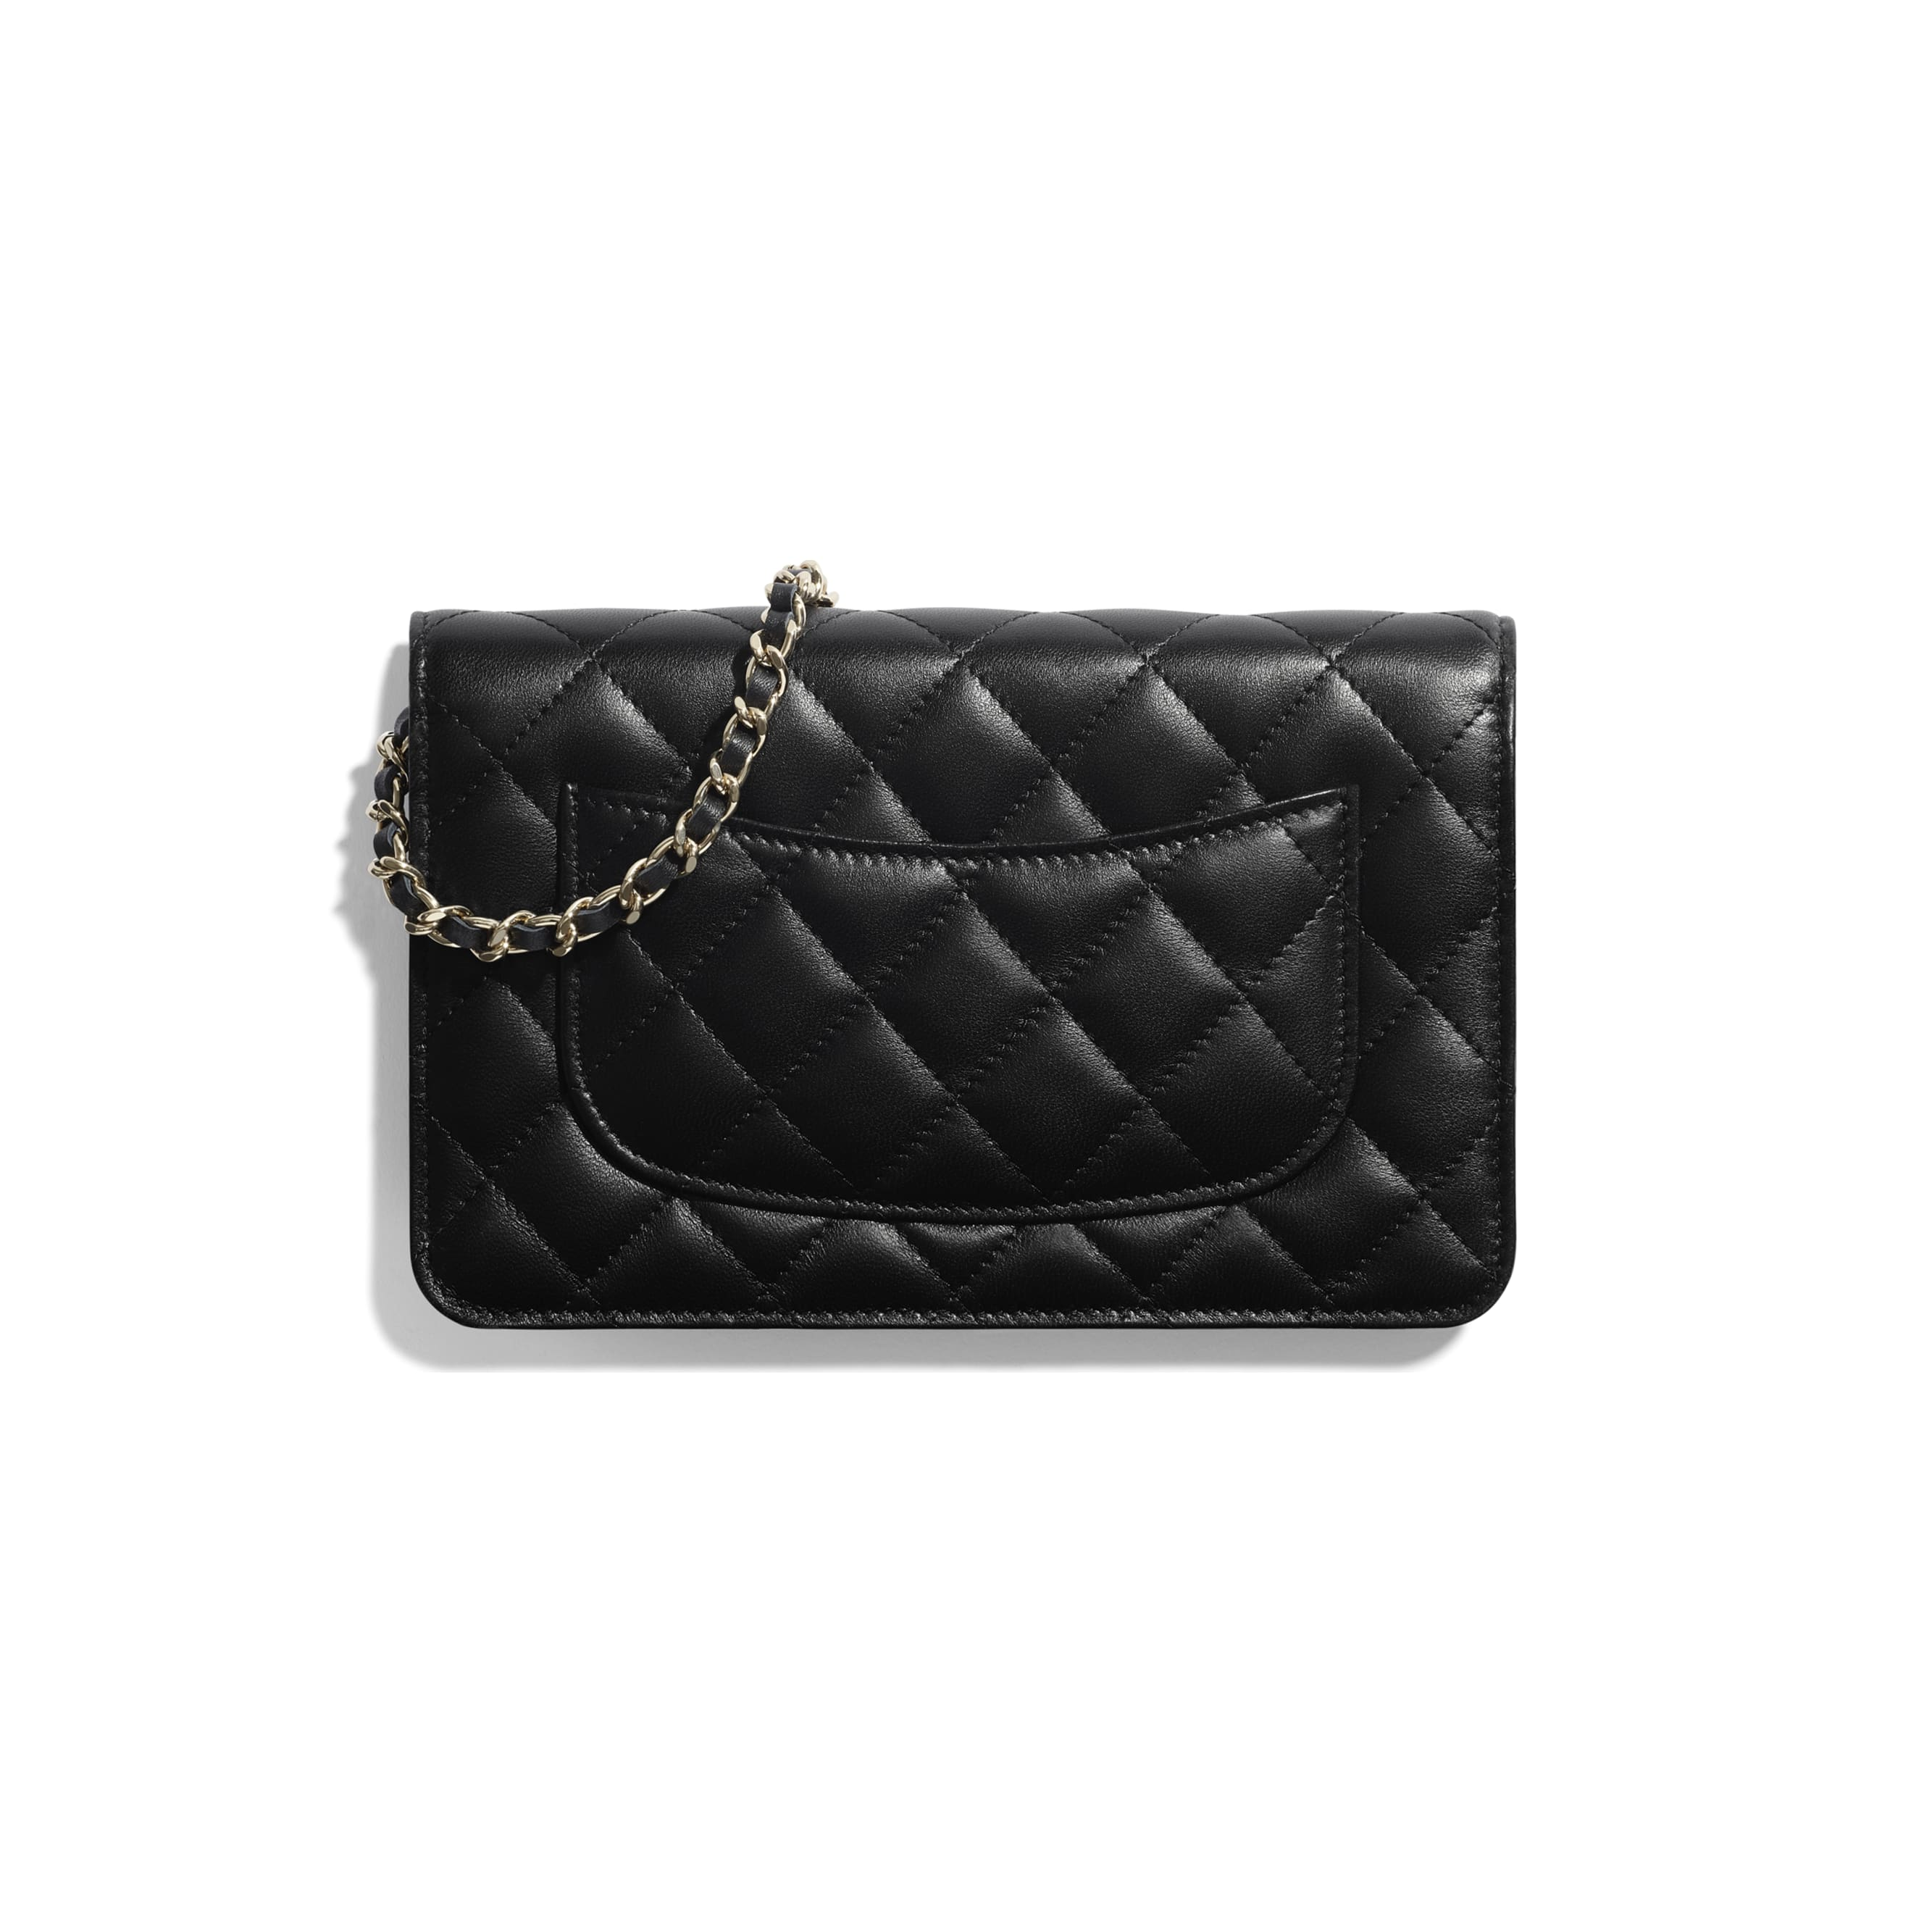 Wallet on Chain - Black - Lambskin & Gold-Tone Metal - CHANEL - Alternative view - see standard sized version